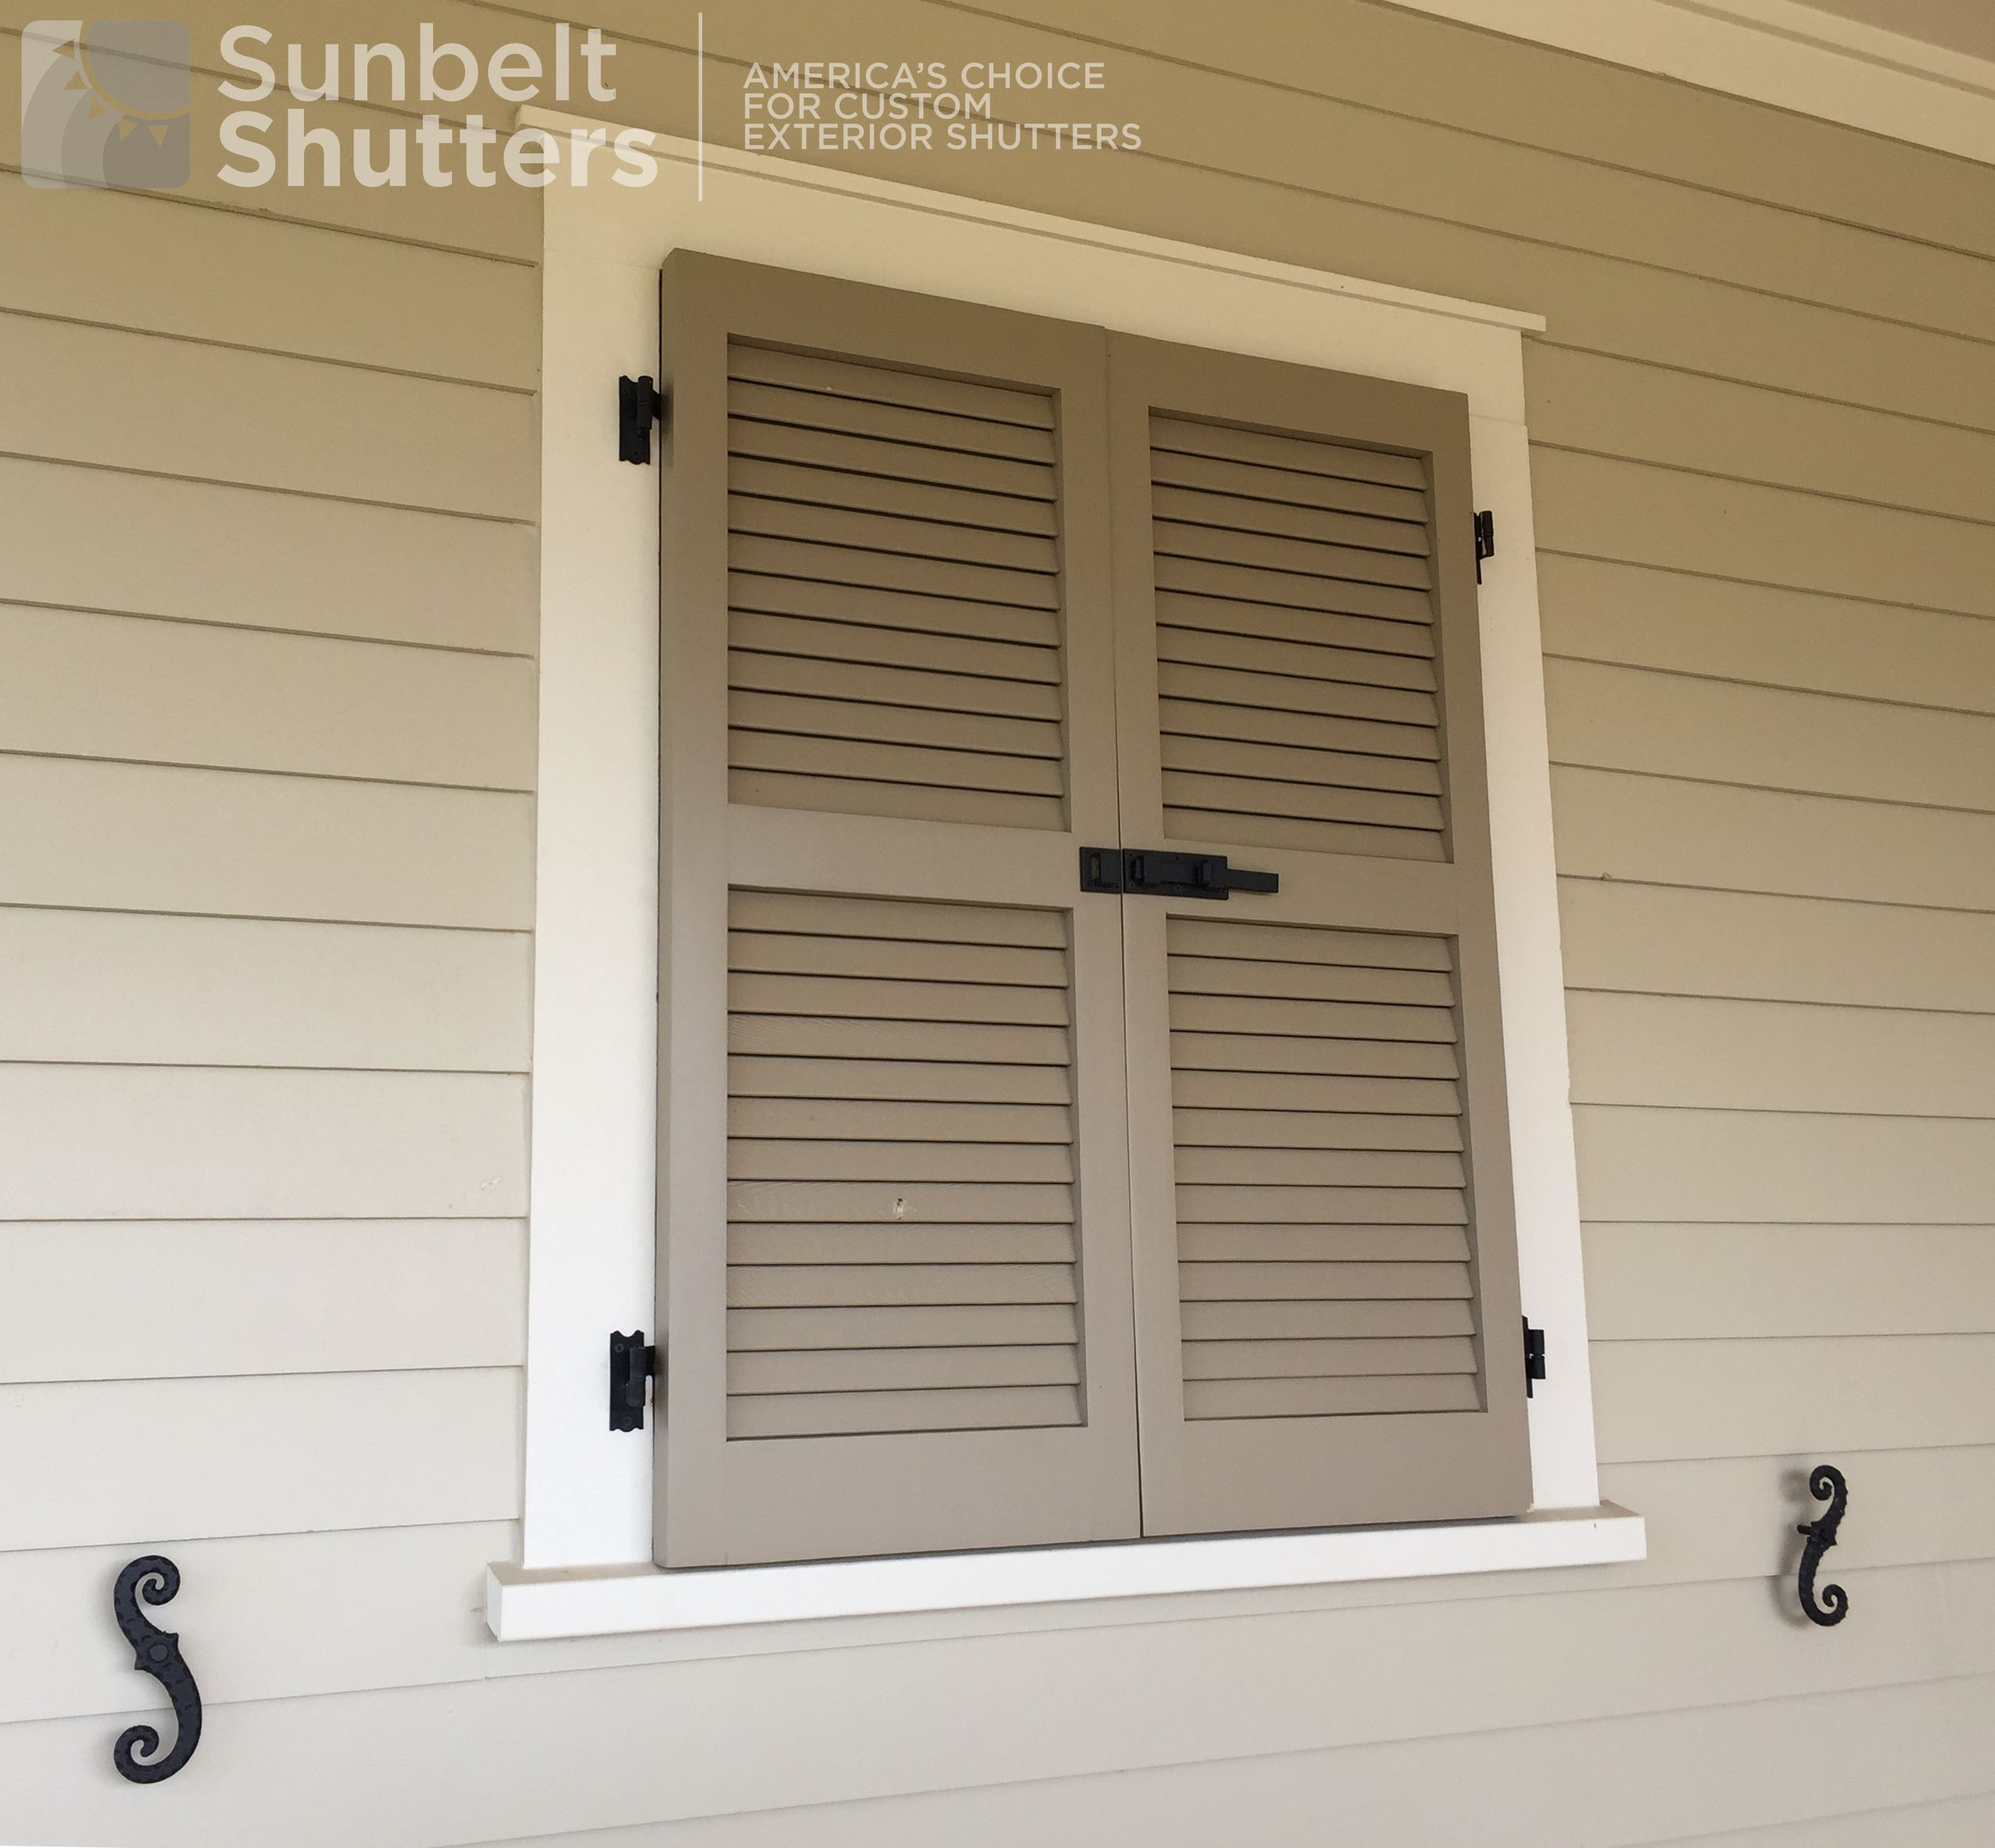 Faux Window With Pine Wooden Louvered Shutters Functional Hinges Tiebacks Slide Bolts Shutters Exterior Louvered Shutters Windows Exterior